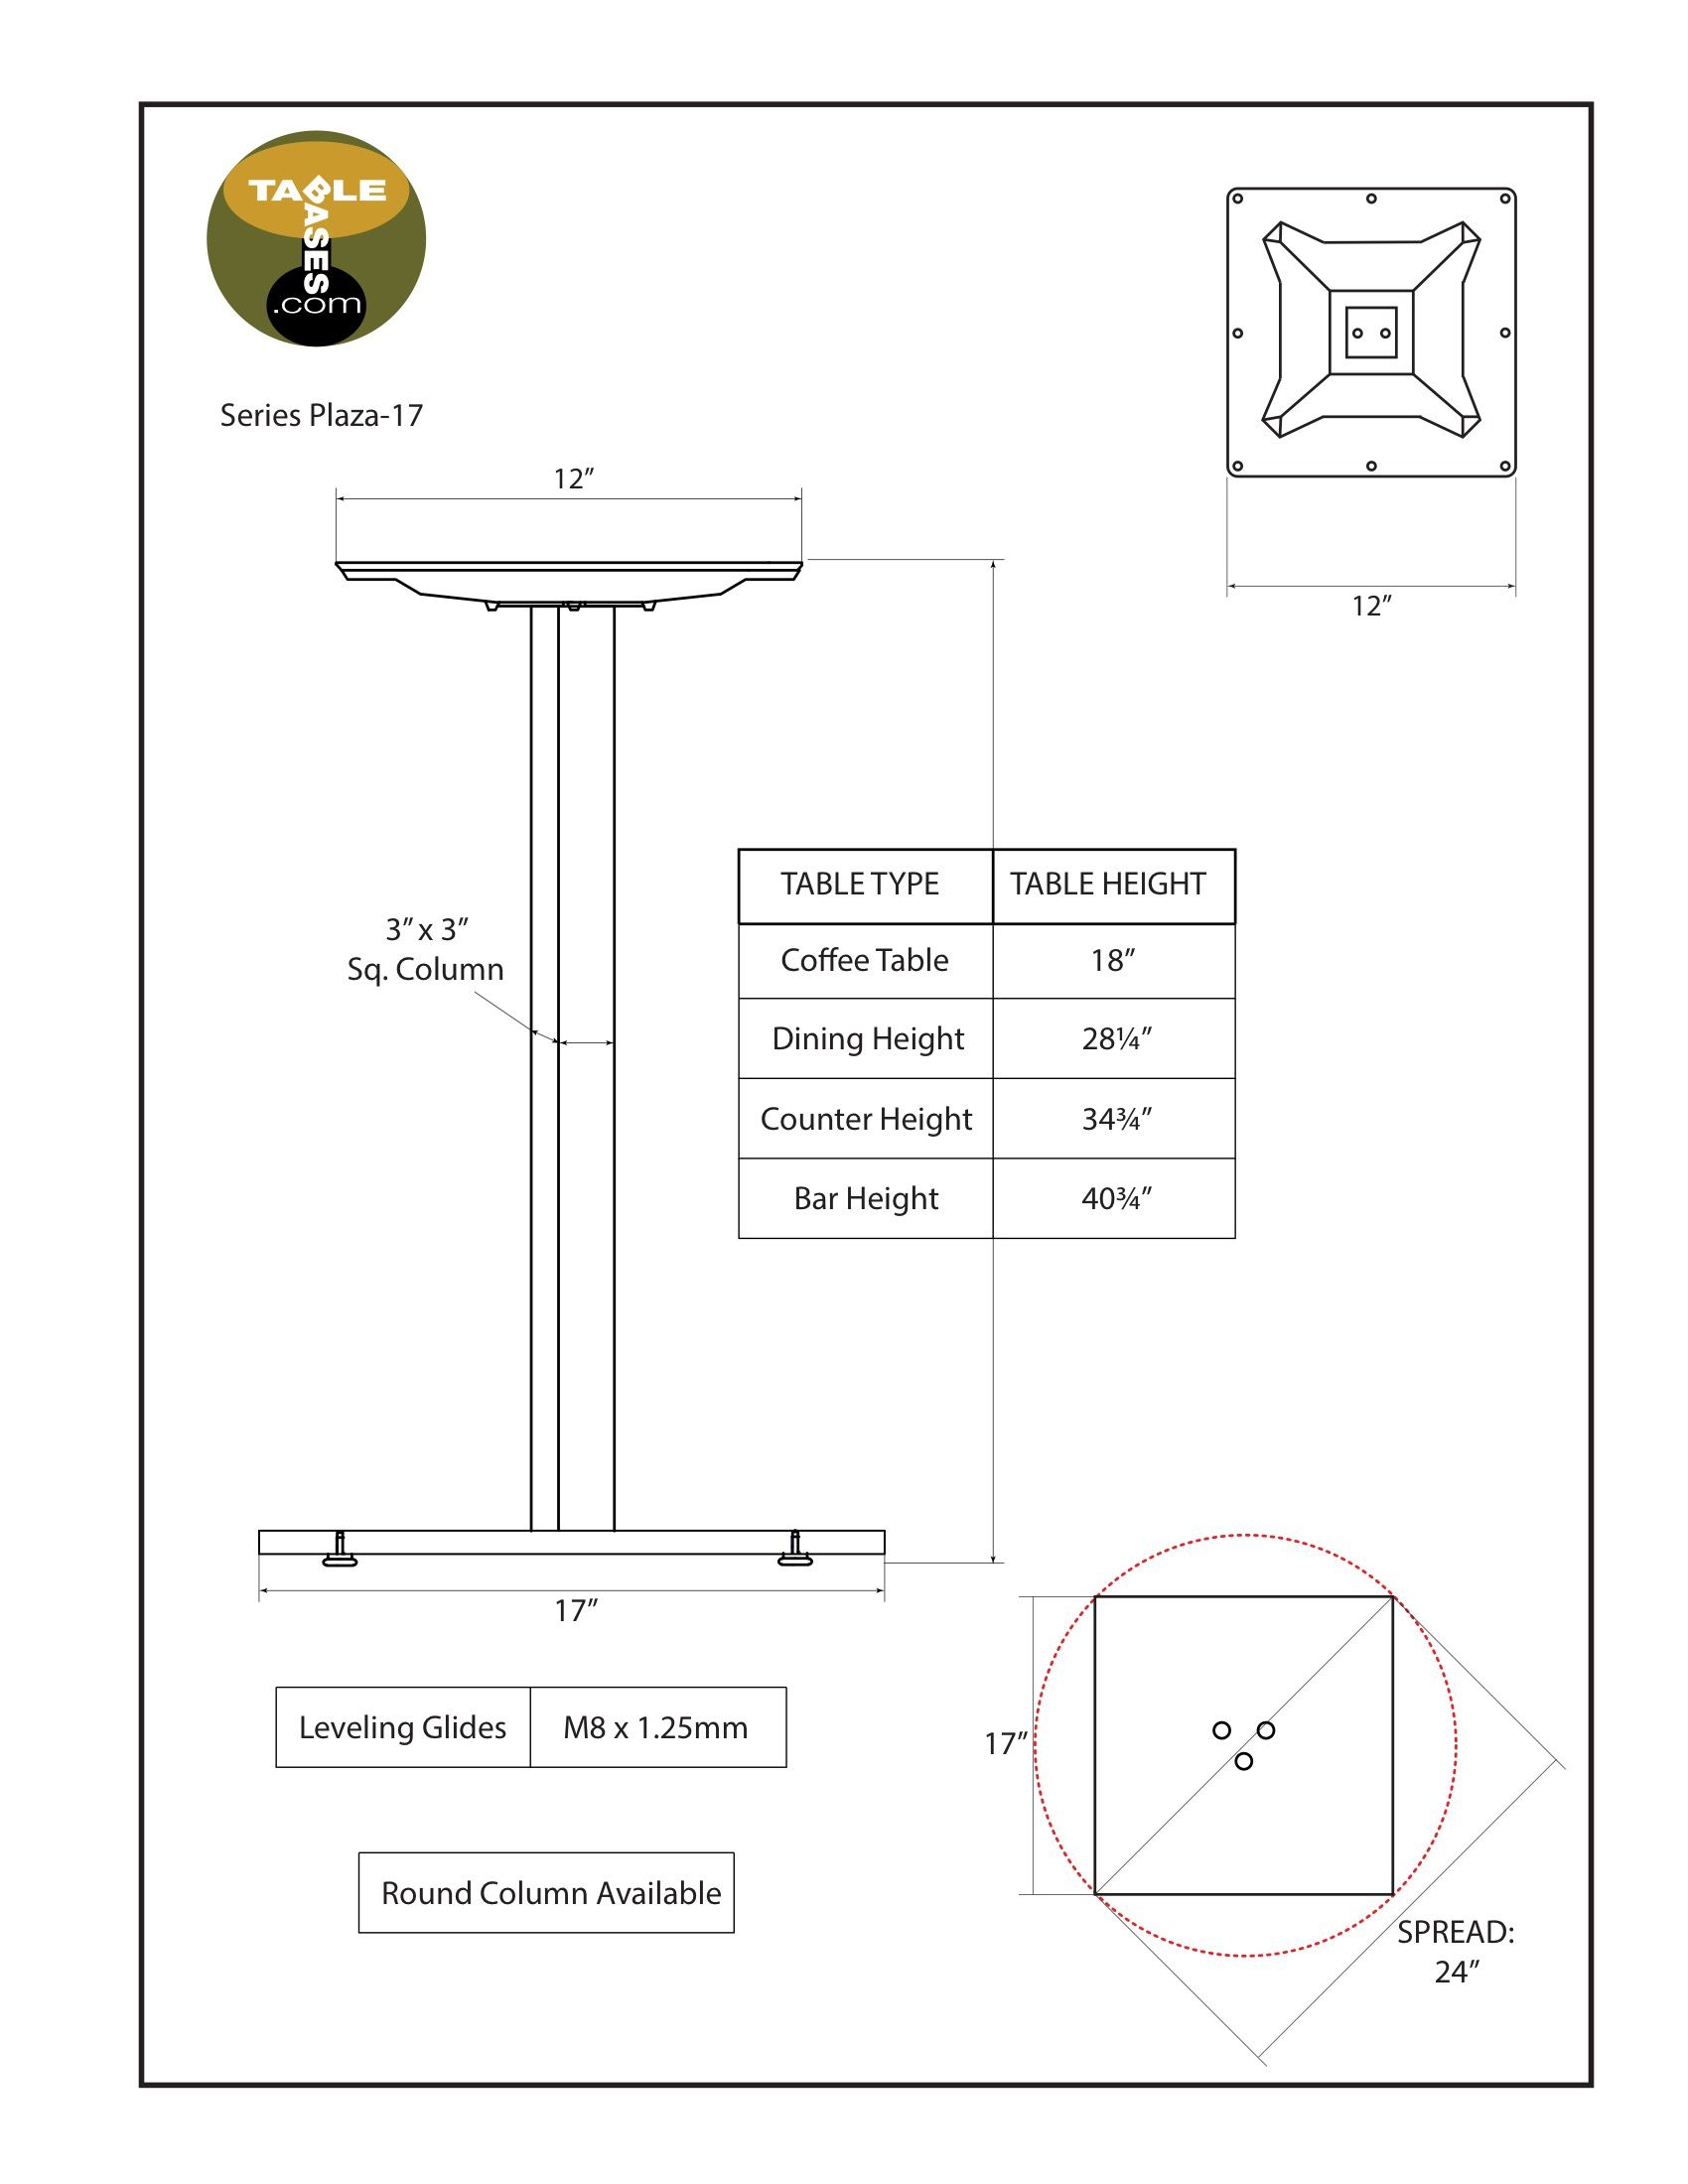 Plaza-17 Specifications